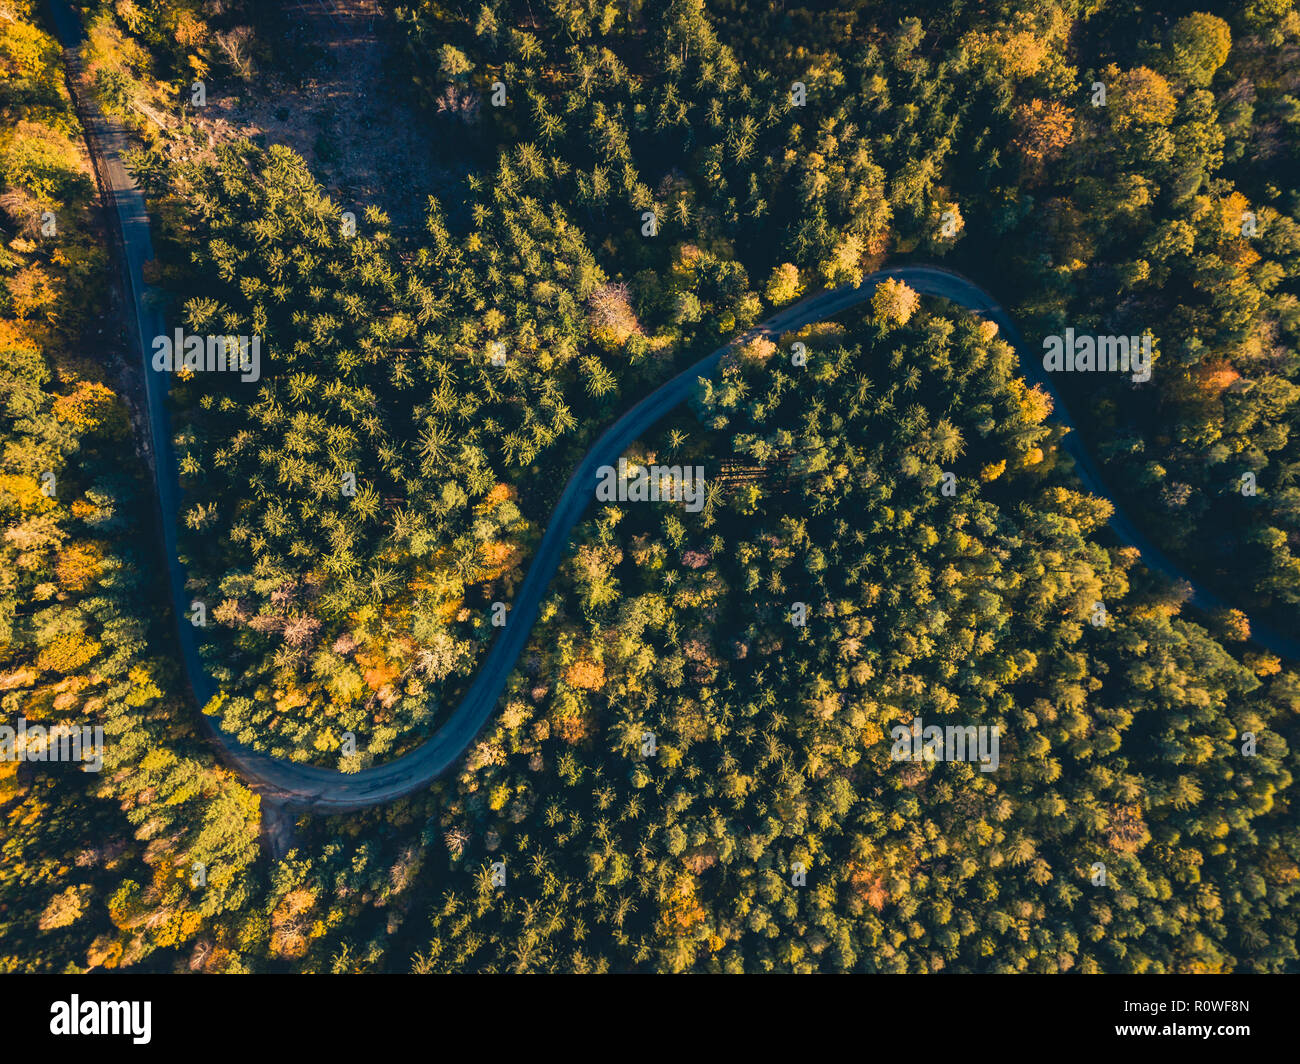 Aerial view of road in the autumn forest, view from above, drone point of view. Inspiring autumn season landscape background. - Stock Image